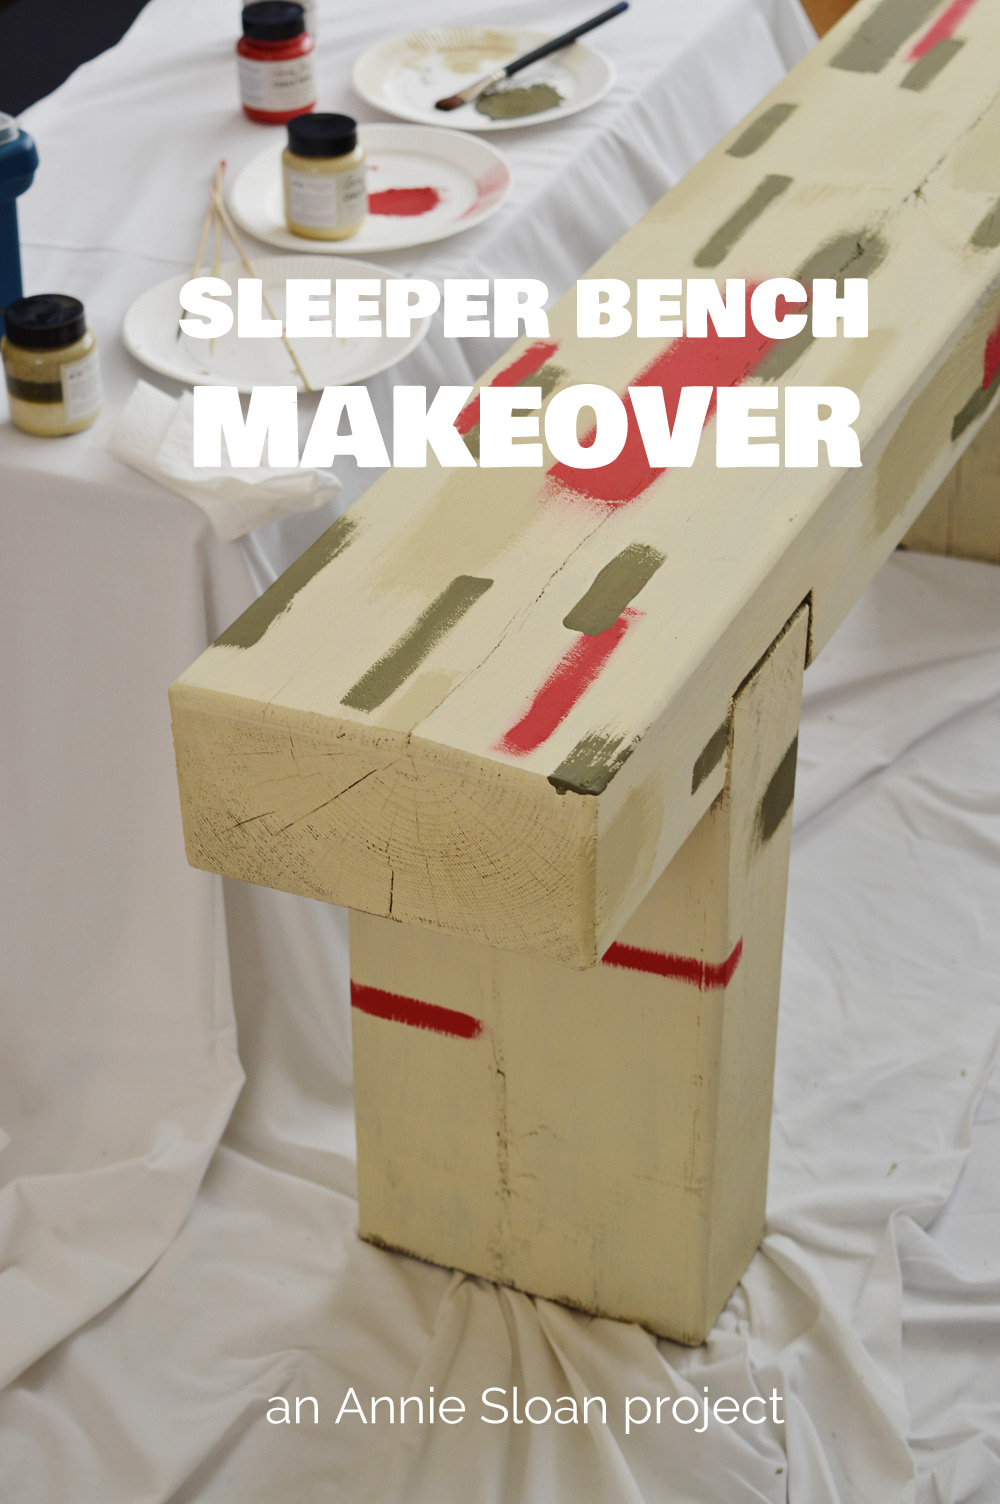 Annie Sloan sleeper bench makeover